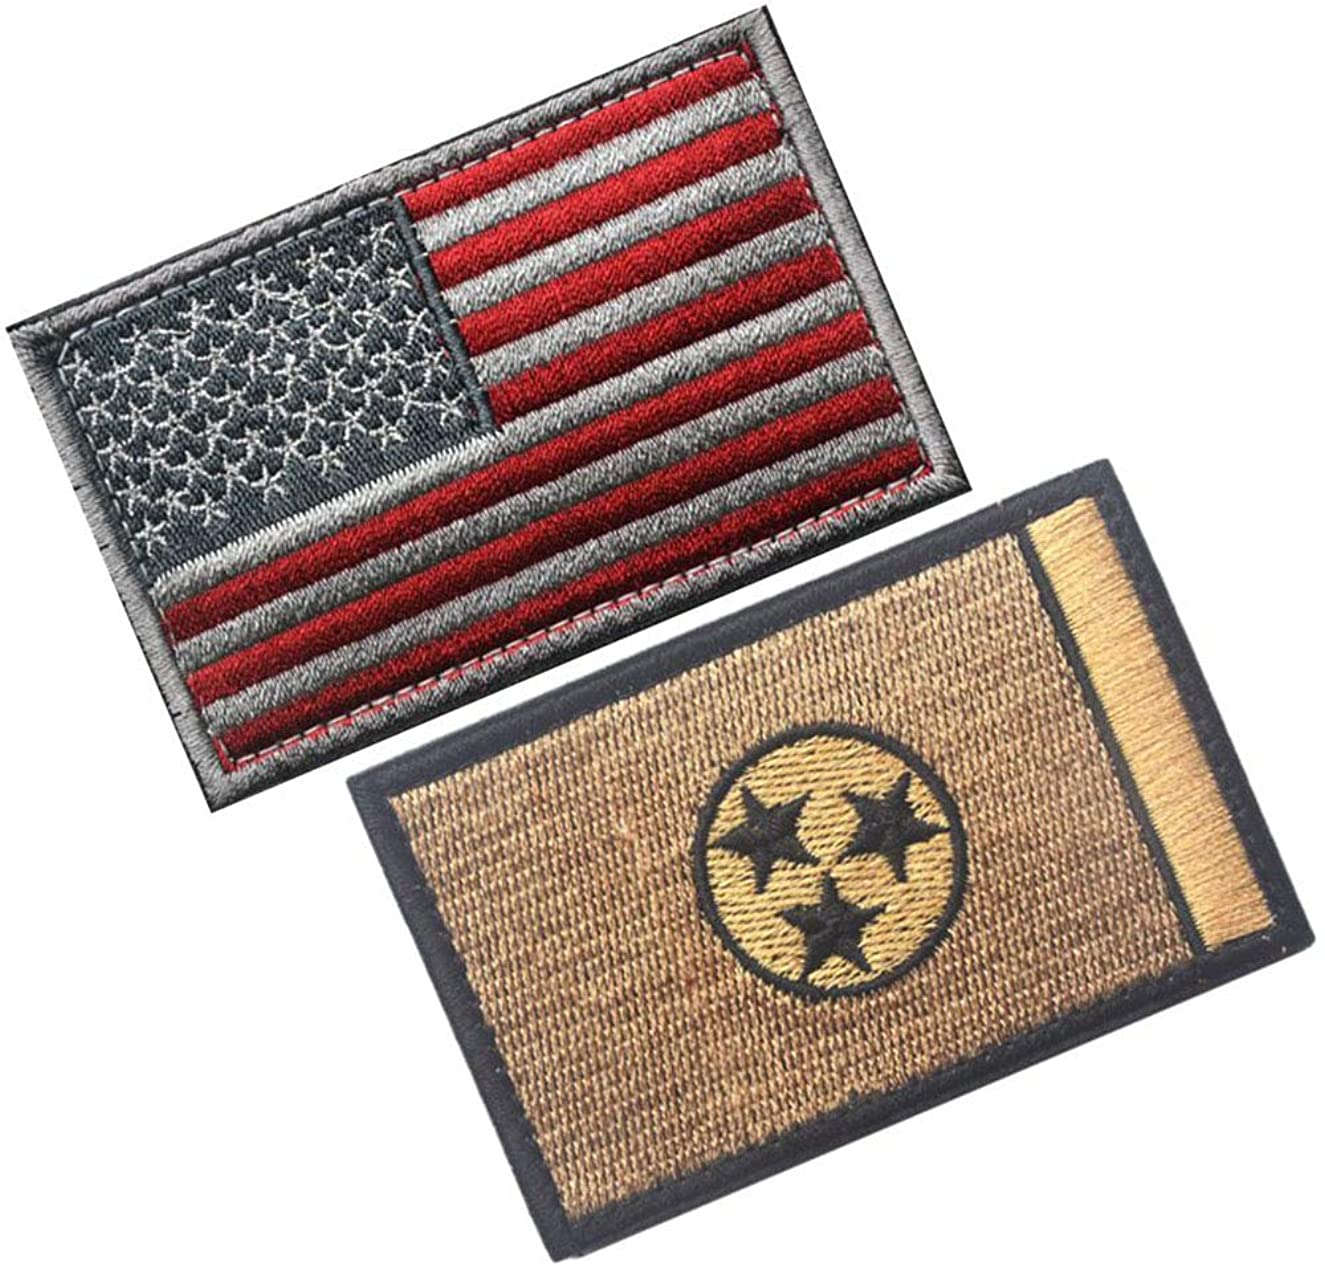 HFDA 2 Piece US Flag and Tennessee Flag Patches Morale Patches Cloth Fabric Badges Tactical Patches (Color 13)